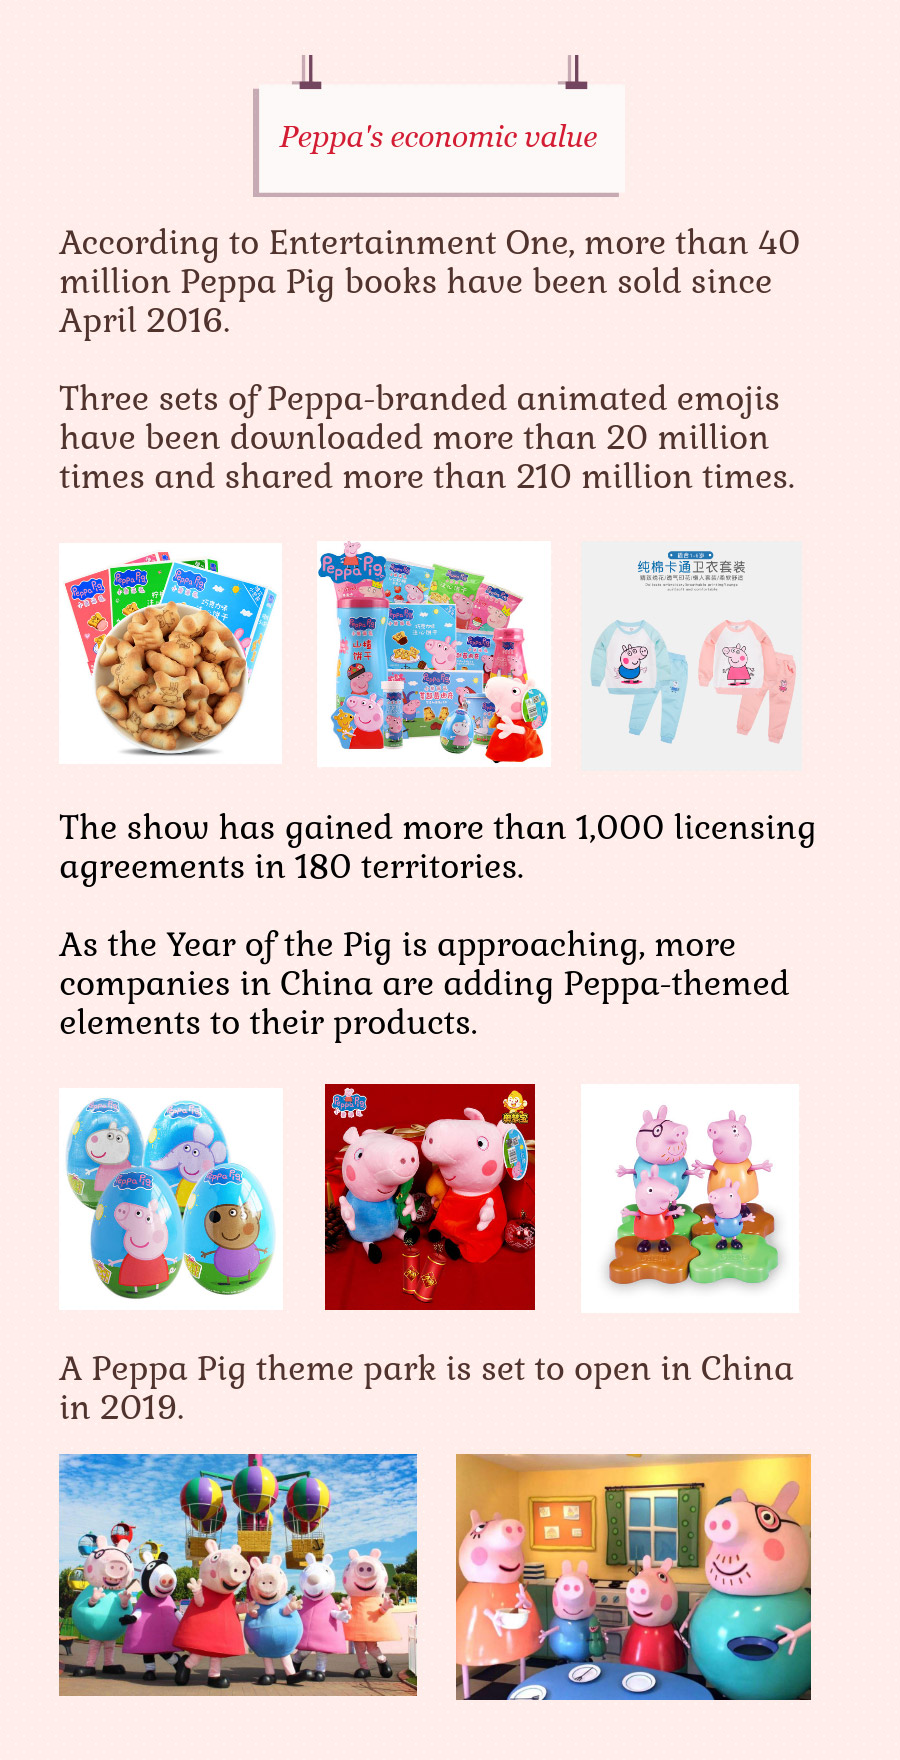 Peppa Pig's journey to become a Chinese cultural icon